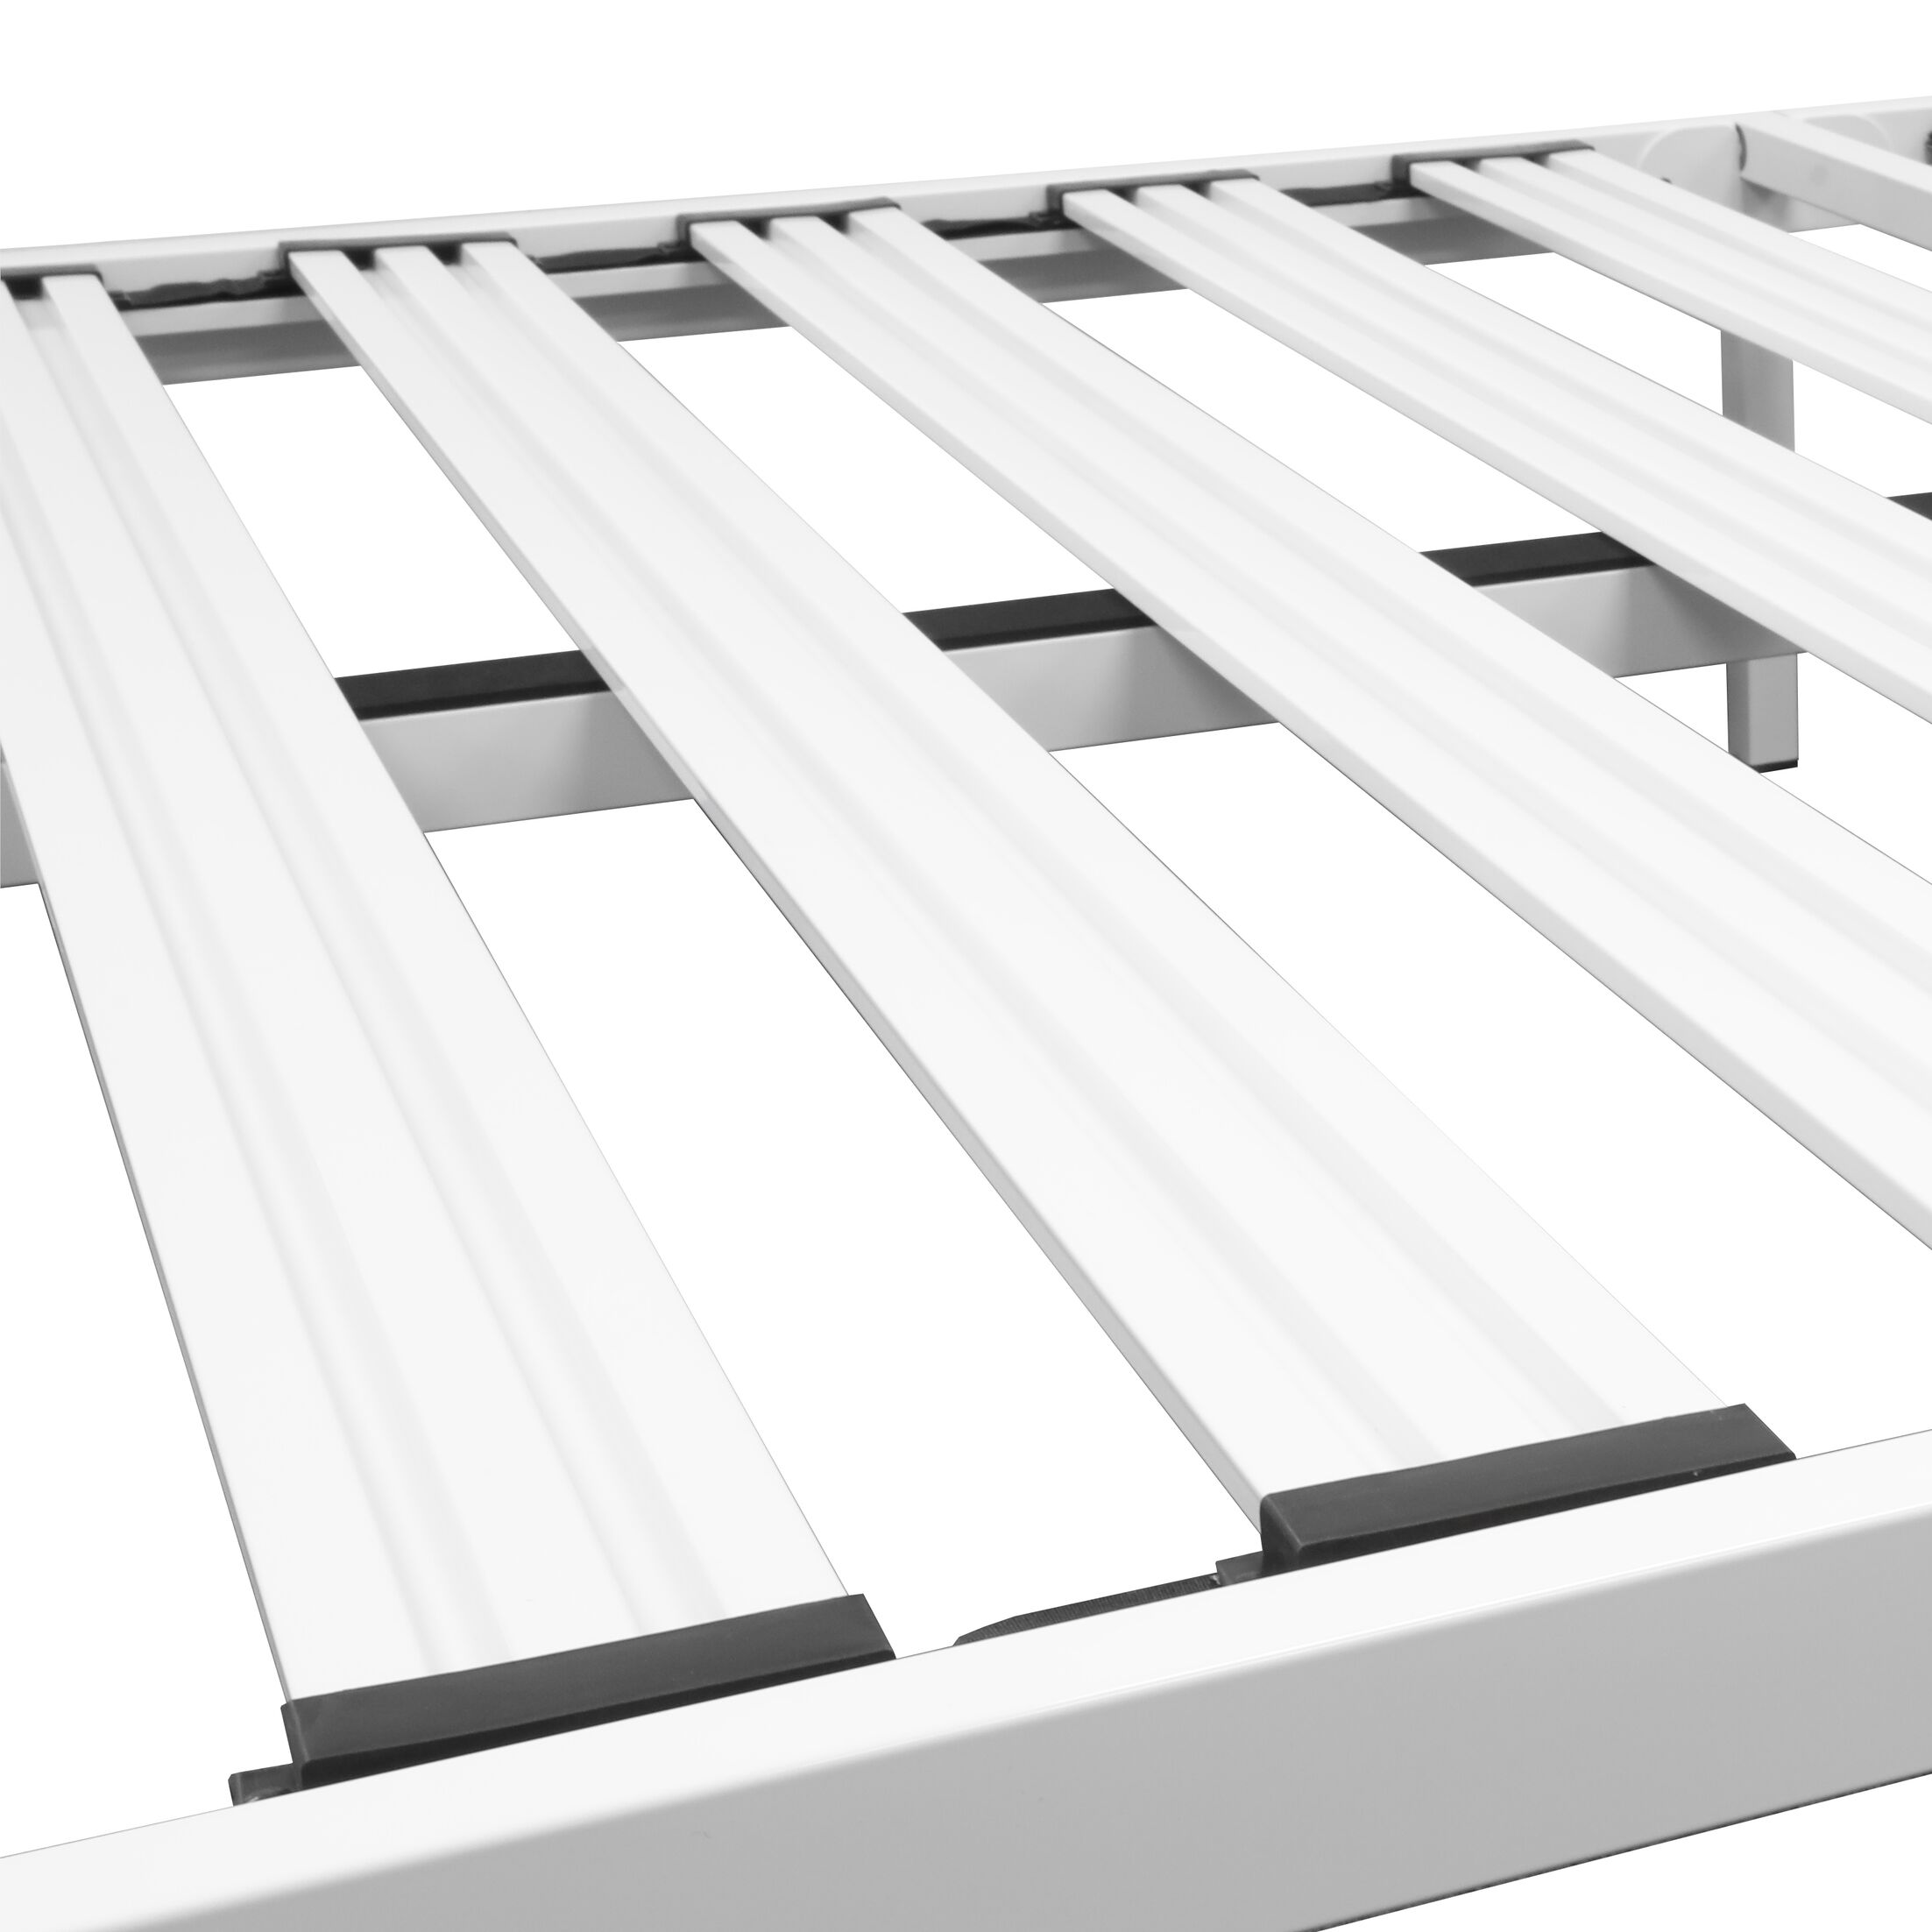 Hukill White Metal Platform Bed Frame Size: Queen